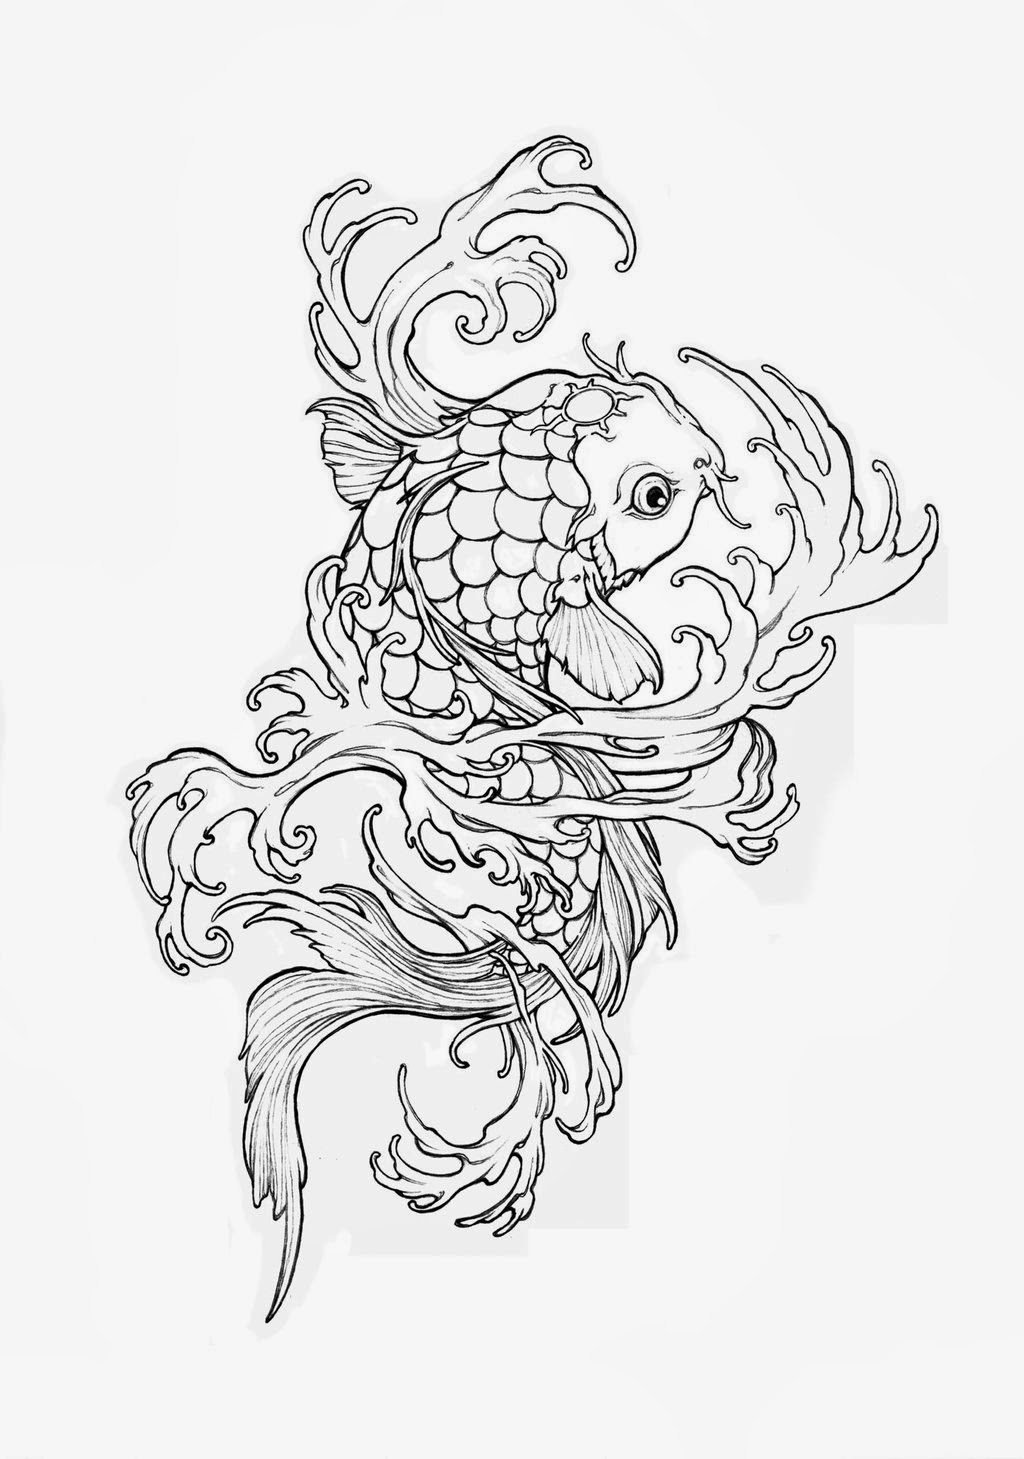 realistic koi fish coloring page koi fish coloring pages to download and print for free realistic page coloring koi fish